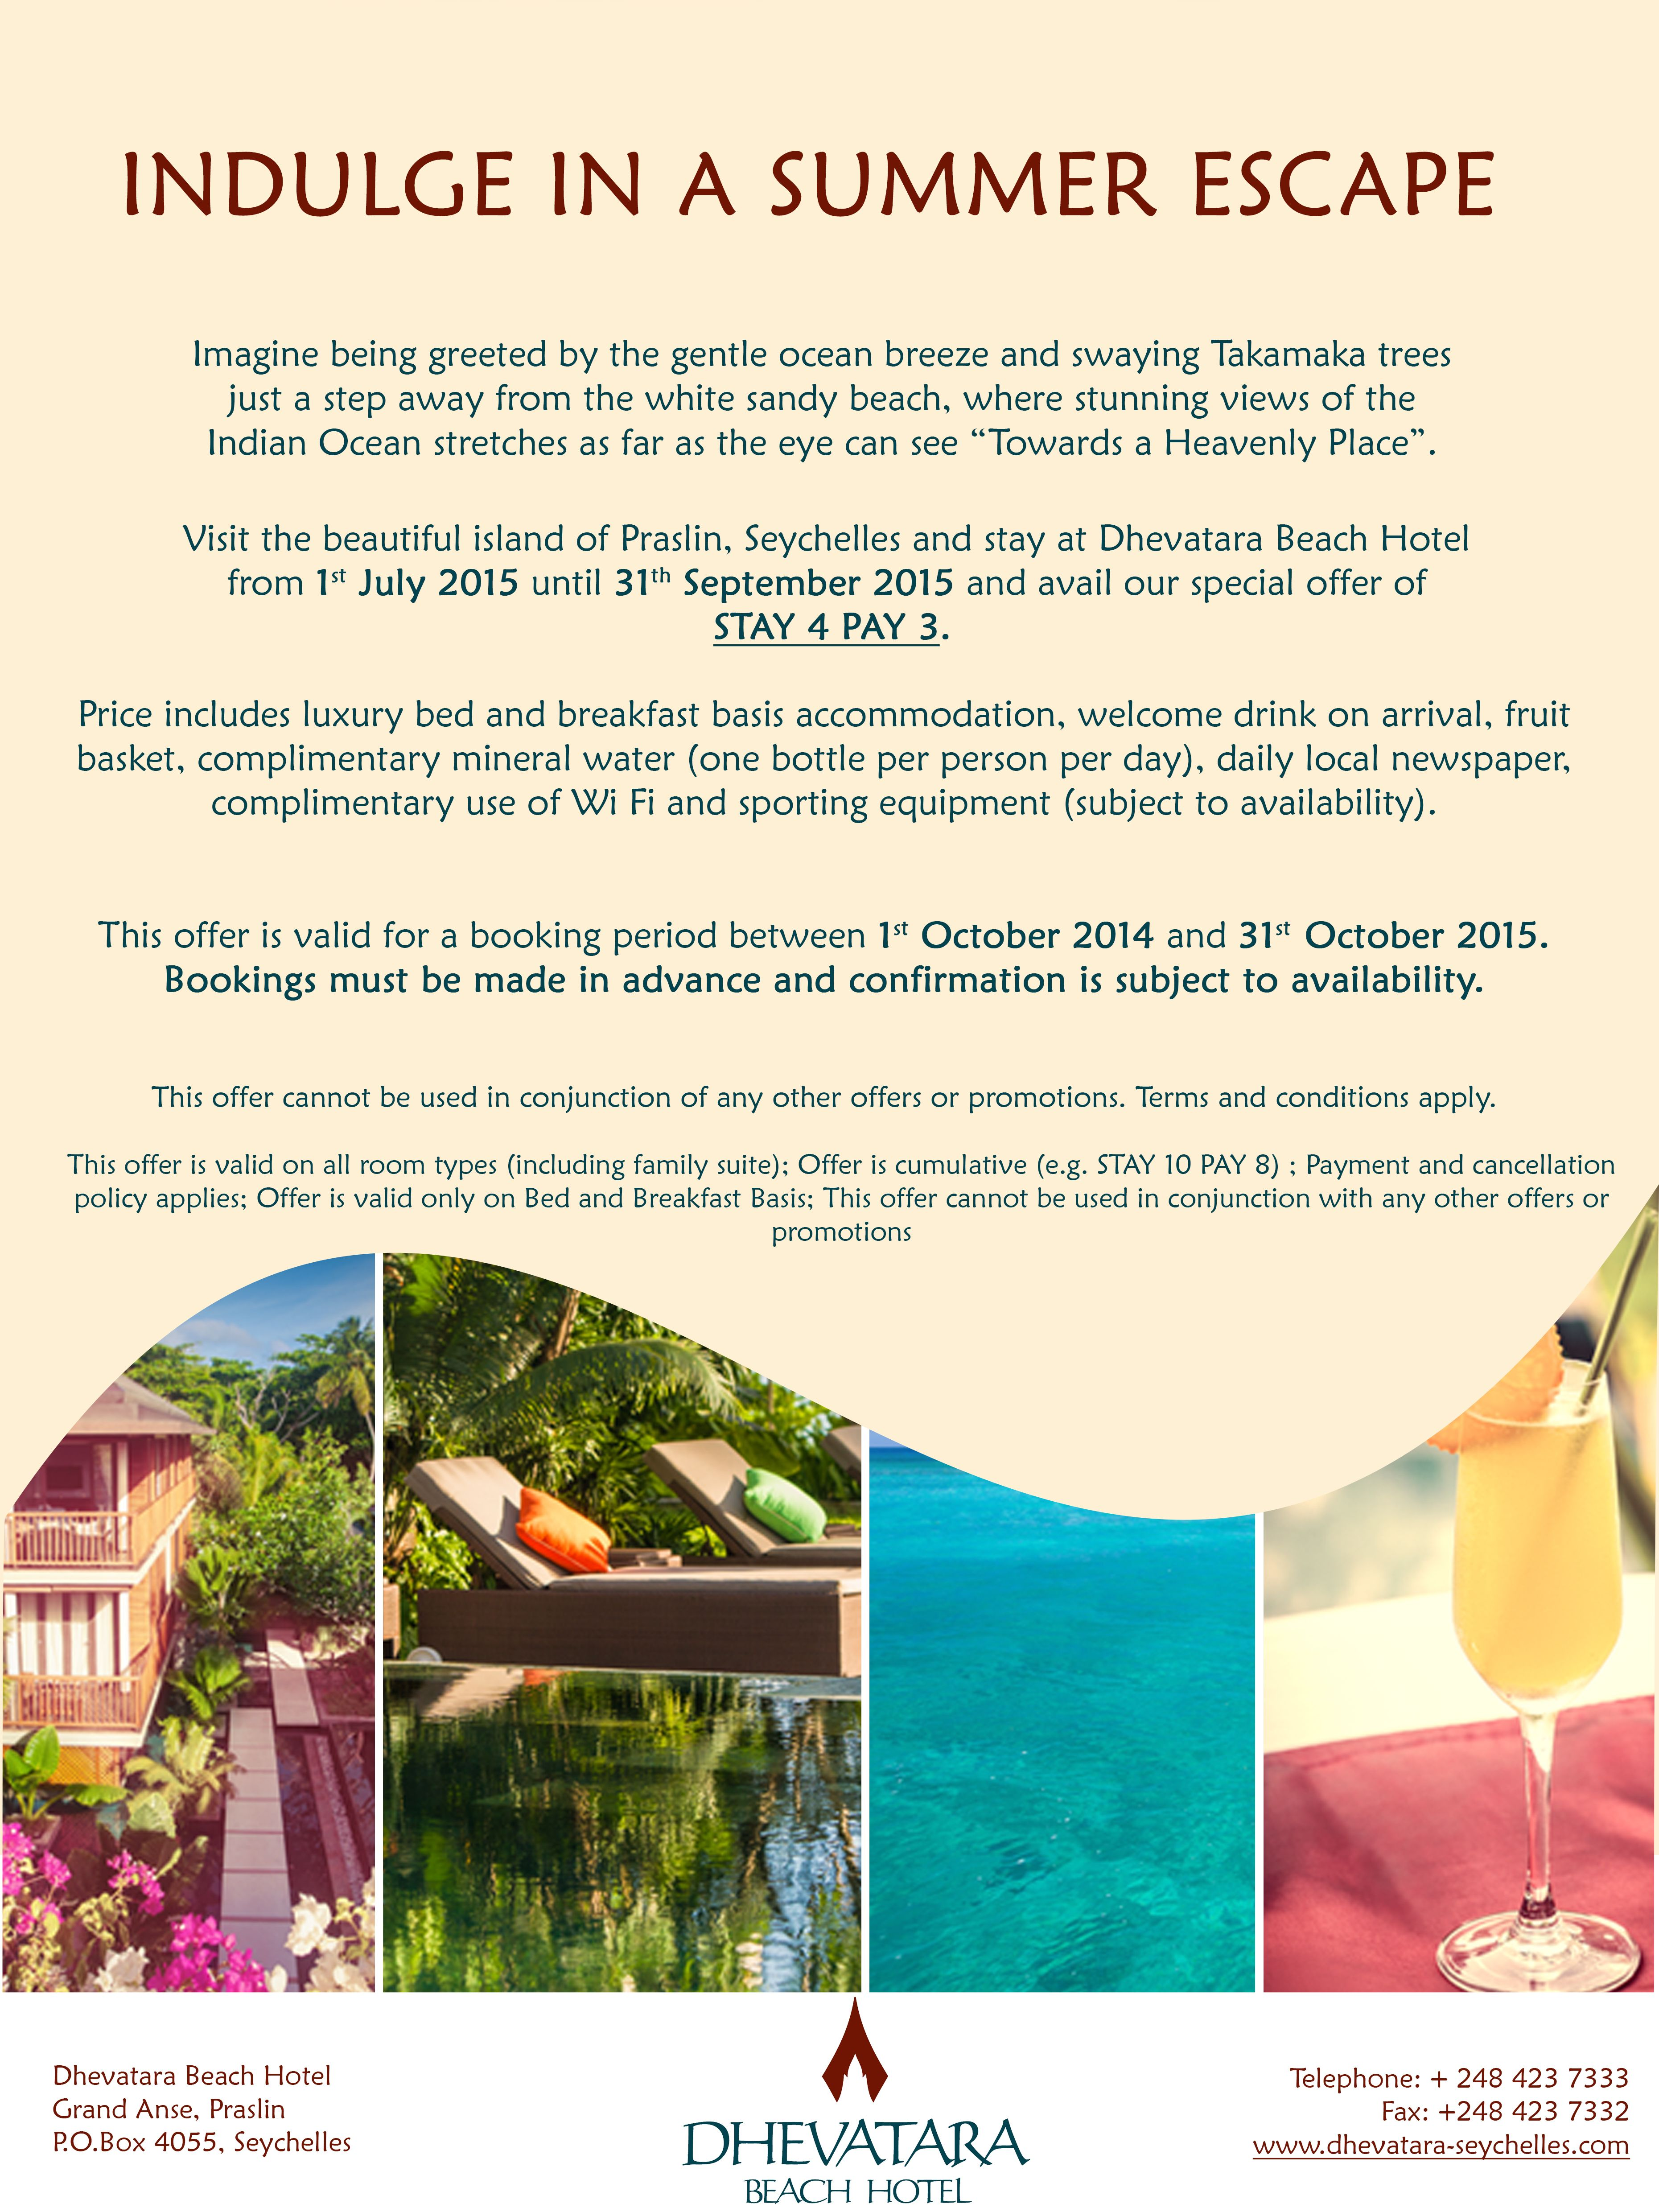 A very HOT Summer Promotion at Dhevatara Beach Hotel in Praslin .  Book NOW at www.hermesretreats.com